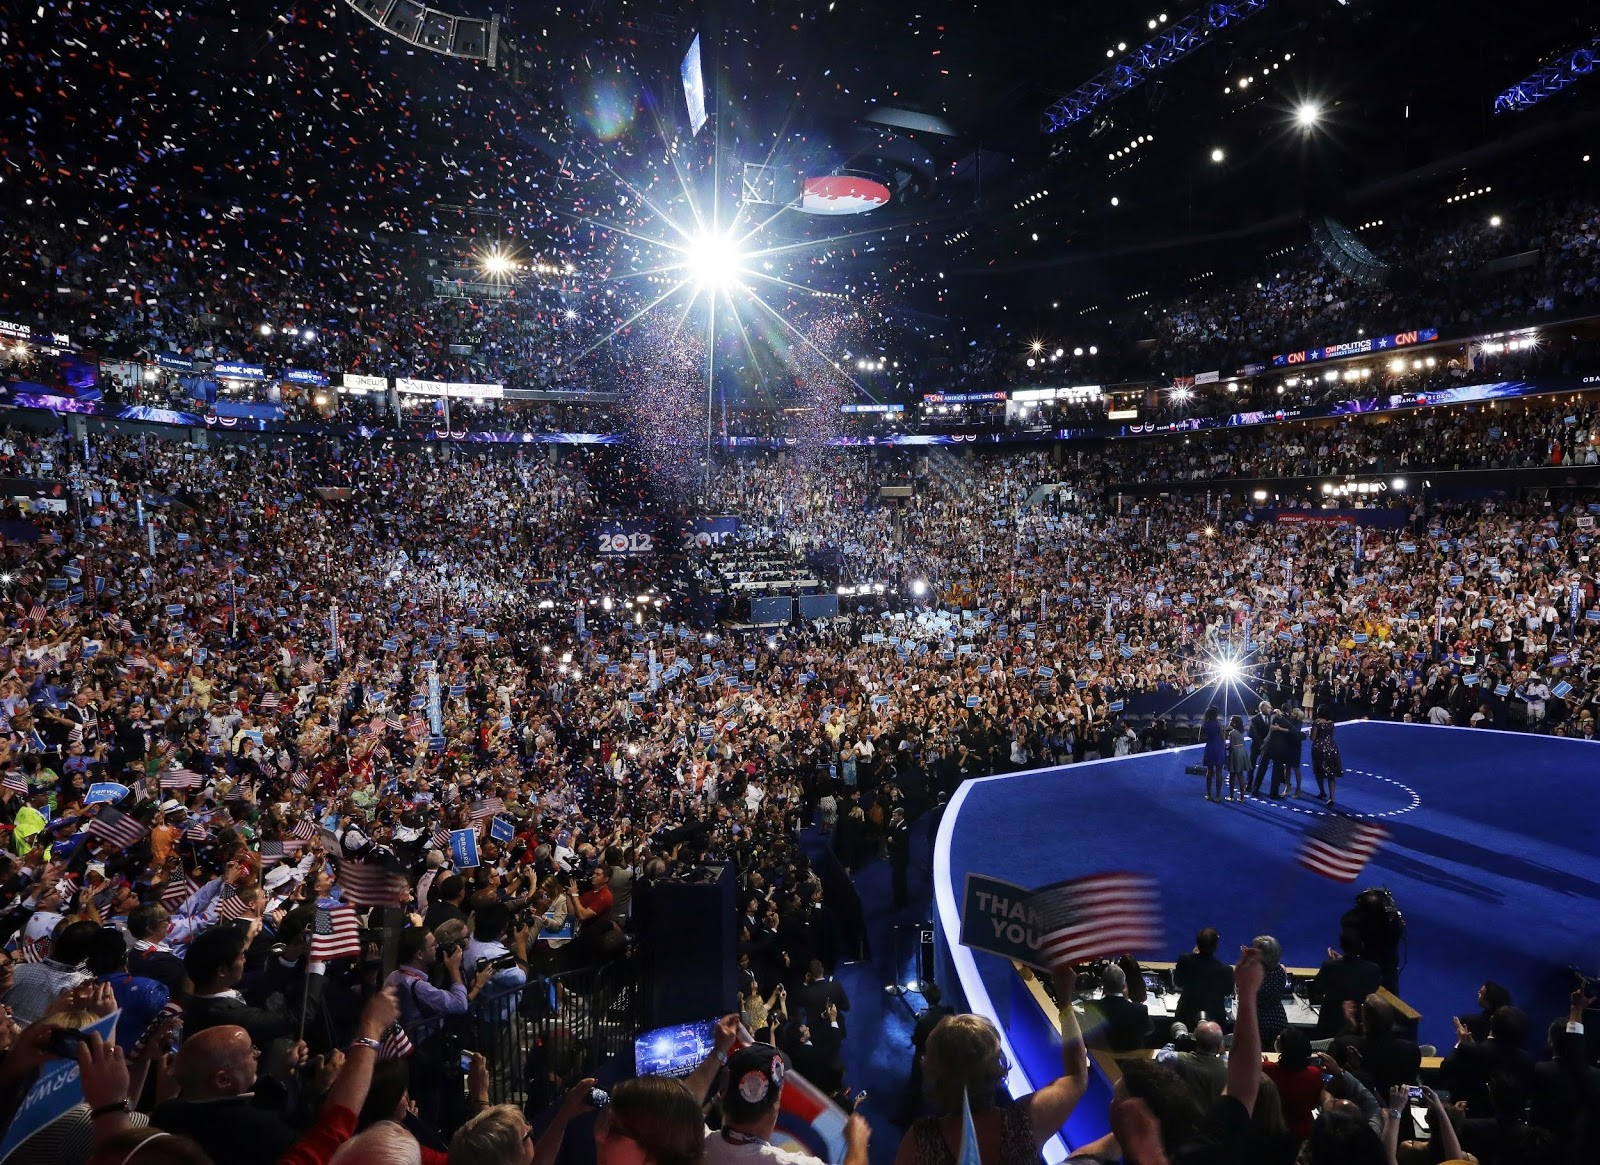 2008 Democratic National Convention in Denver